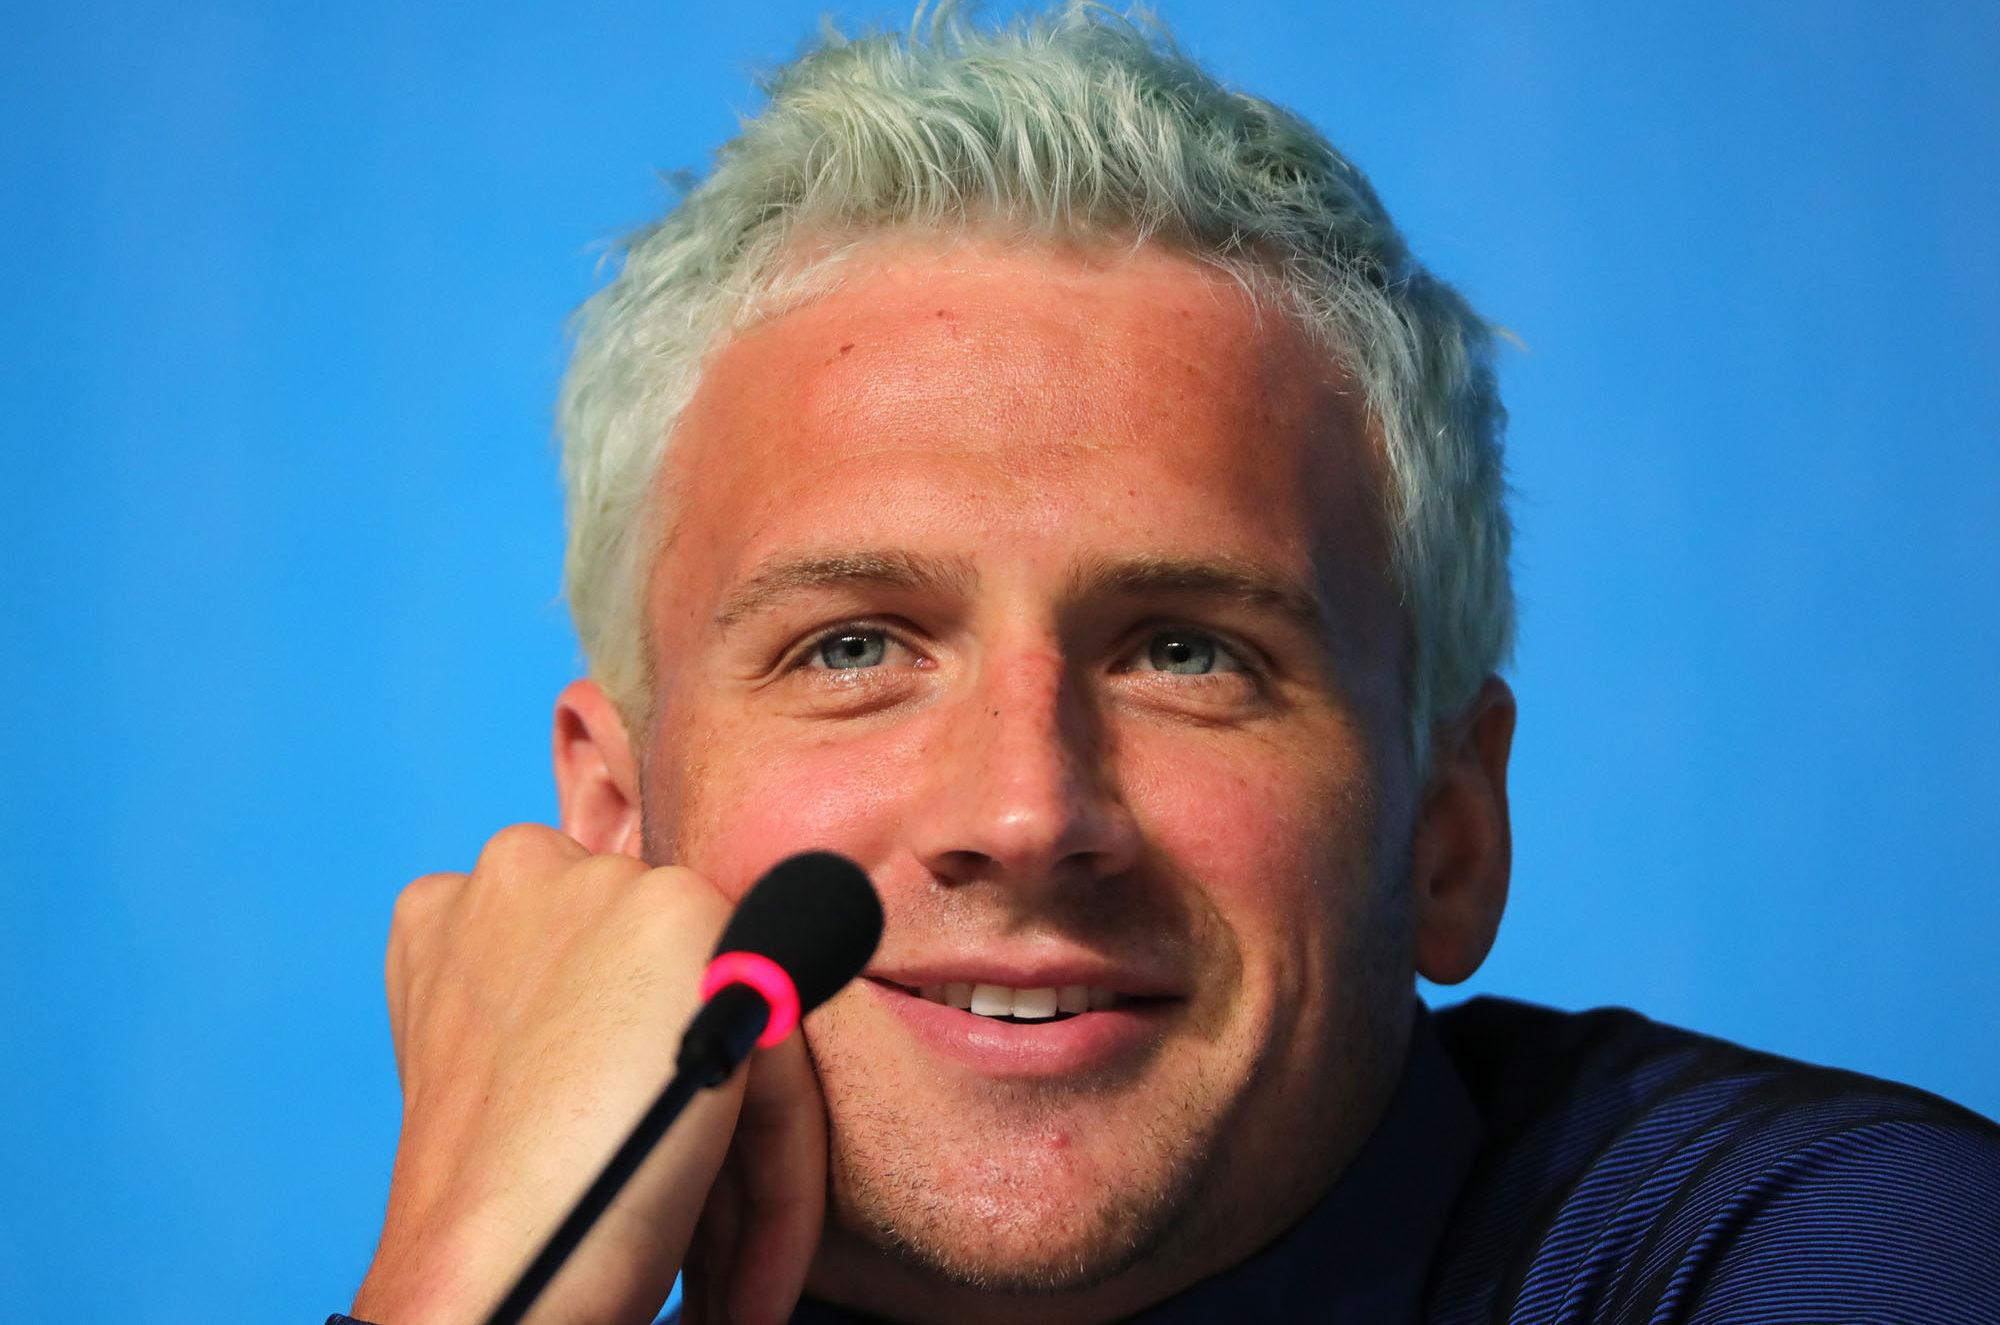 U.S. Olympic Swimmer Ryan Lochte is seen during the Swimming Press Conference of team USA at the Main Press Center at Olympic Park Barra prior to the Rio 2016 Olympic Games on Aug. 3, 2016, in Rio de Janeiro. (Michael Kappeler/DPA/Abaca Press/TNS)